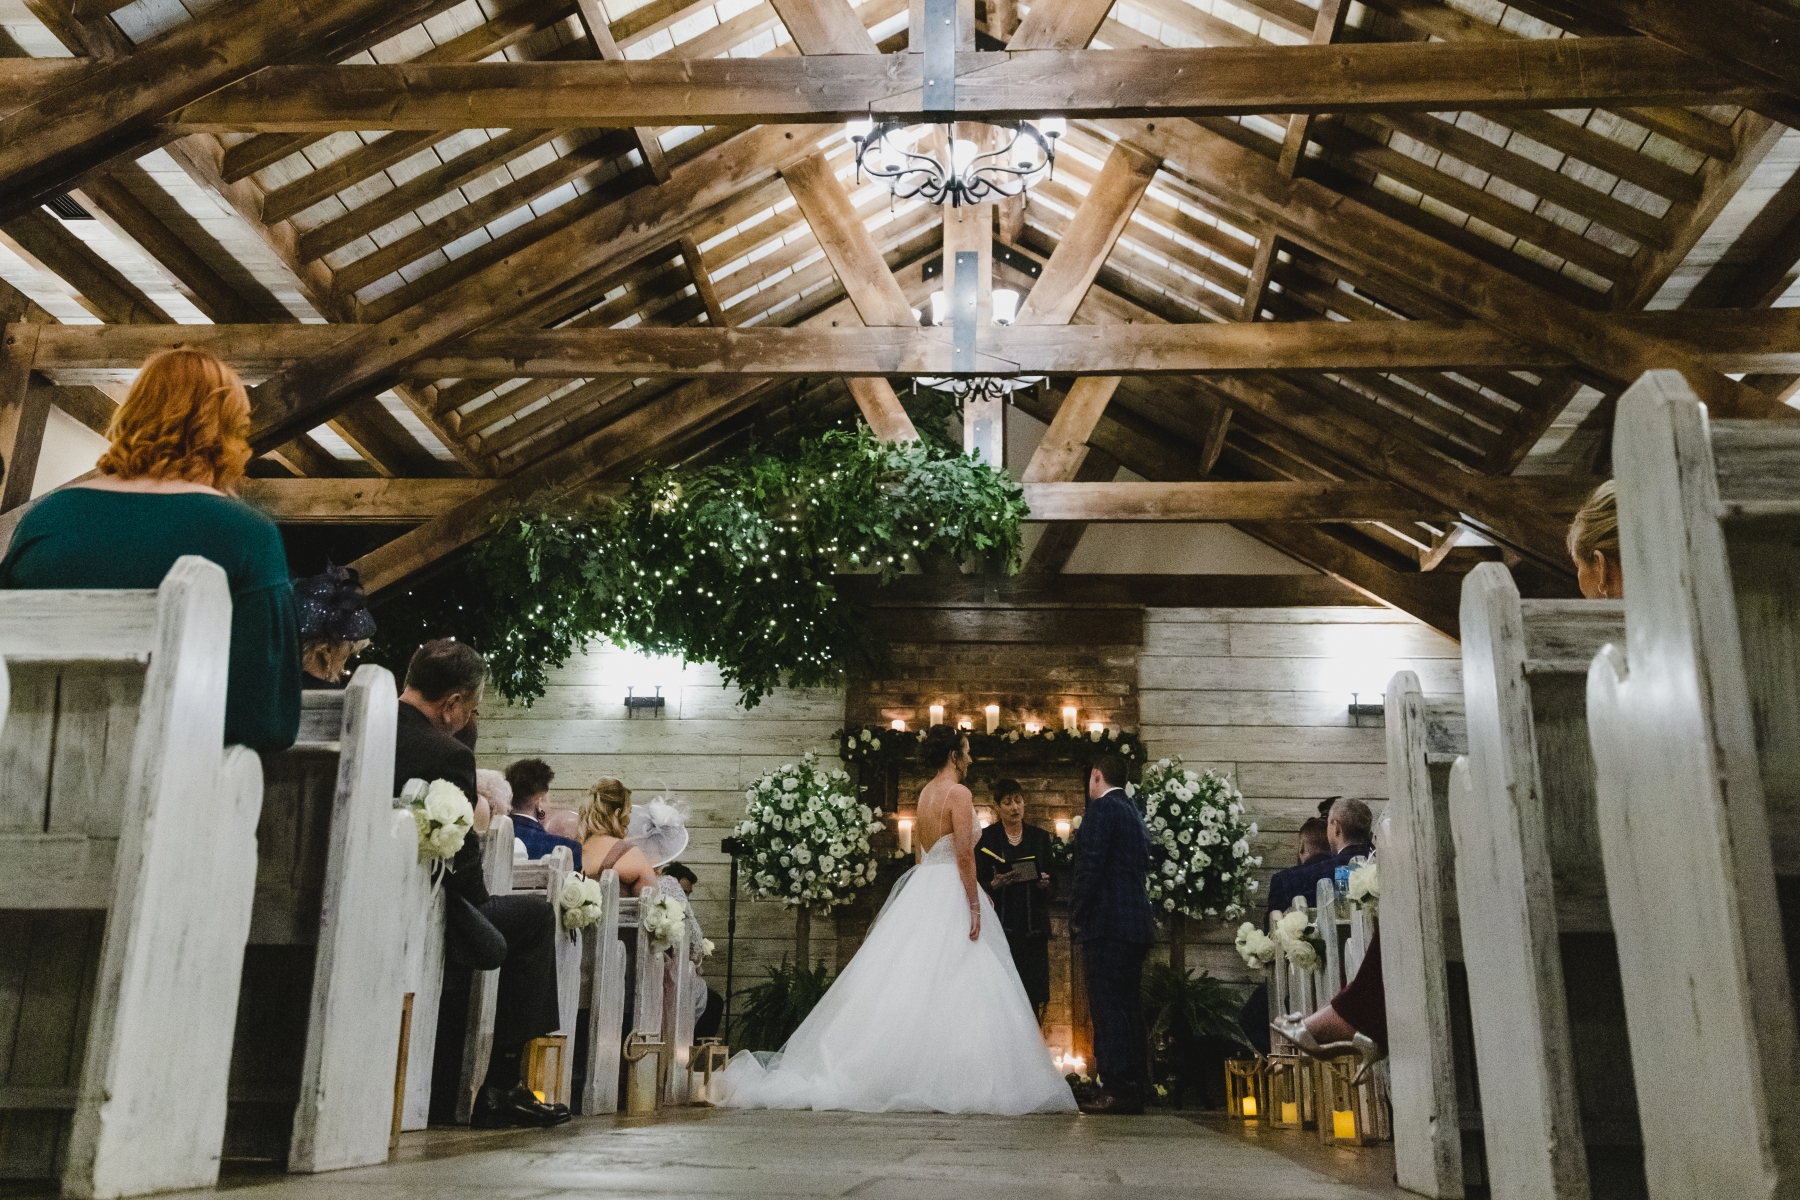 Joanna and Liam's Rustic Romance at South Causey Inn